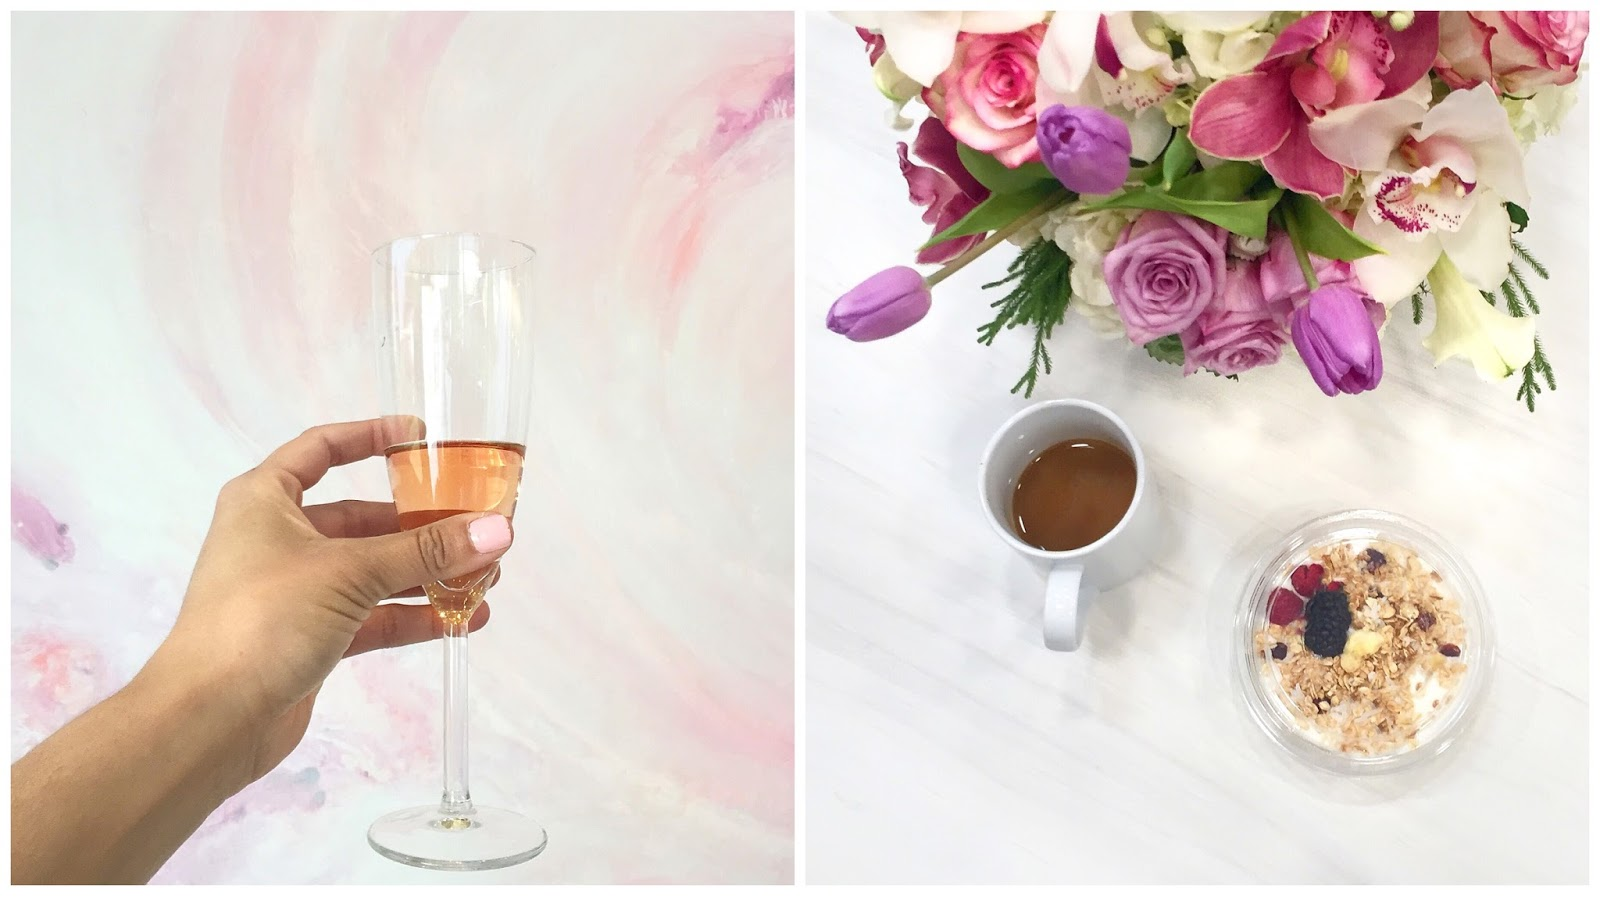 champagne toast, pretty flowers, breakfast with bloggers, digital influencer luncheon